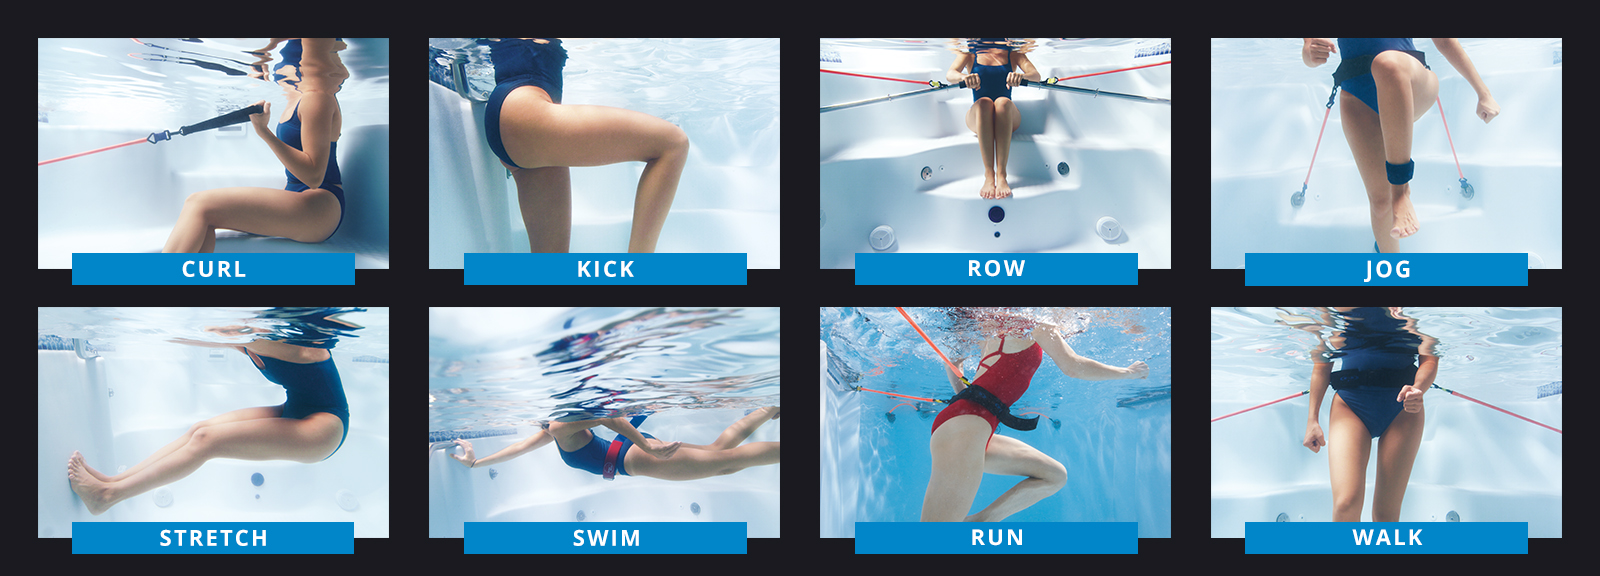 swim spa exercises with exercise equipment